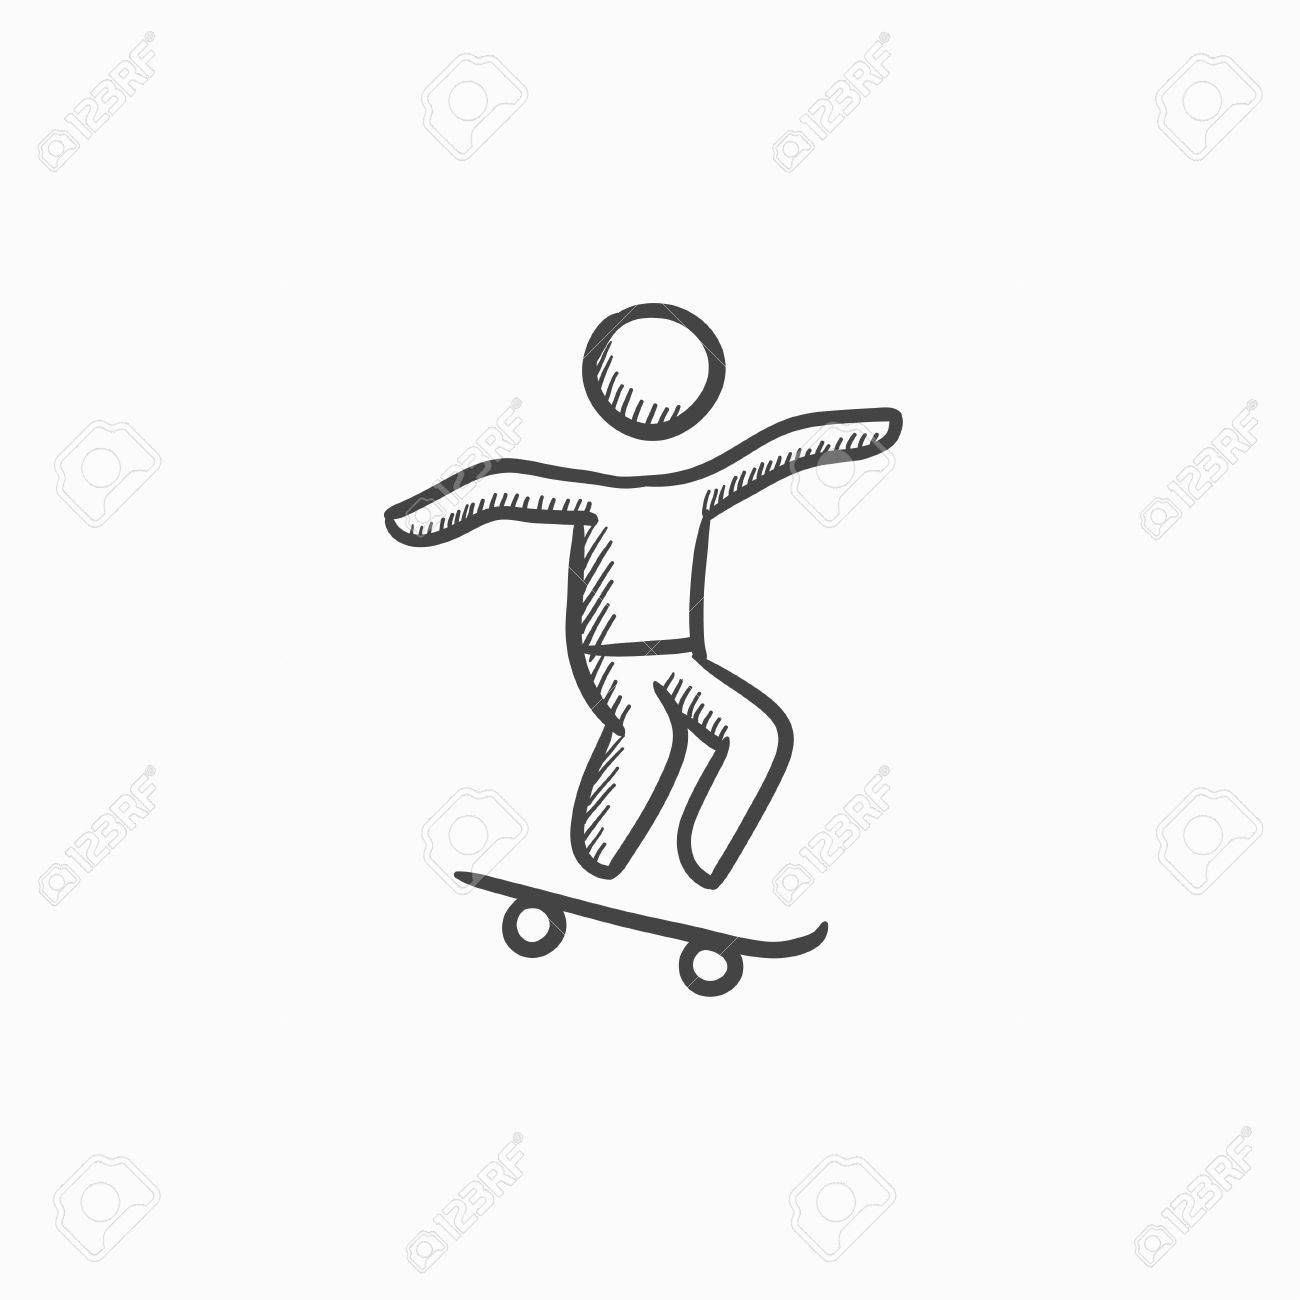 Image Result For Riding Skateboard Drawing Skateboard Drawings Riding